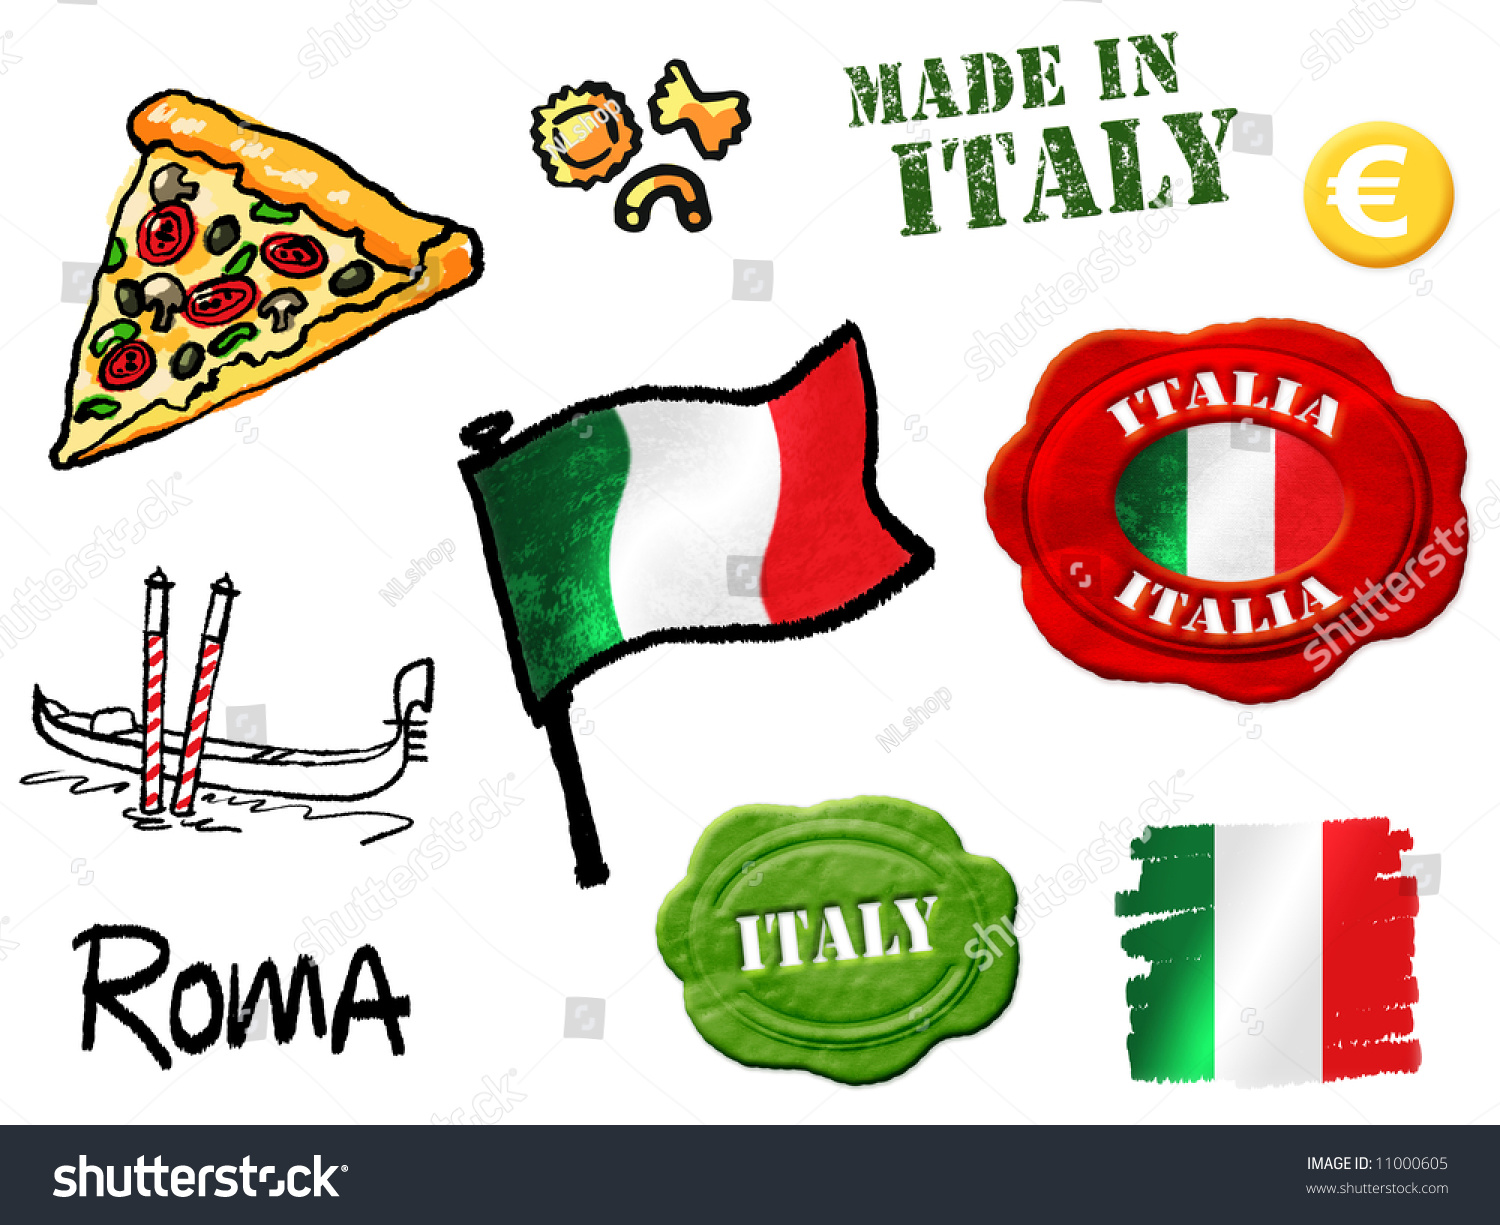 Italy Symbols Stock Photo 11000605 : Shutterstock